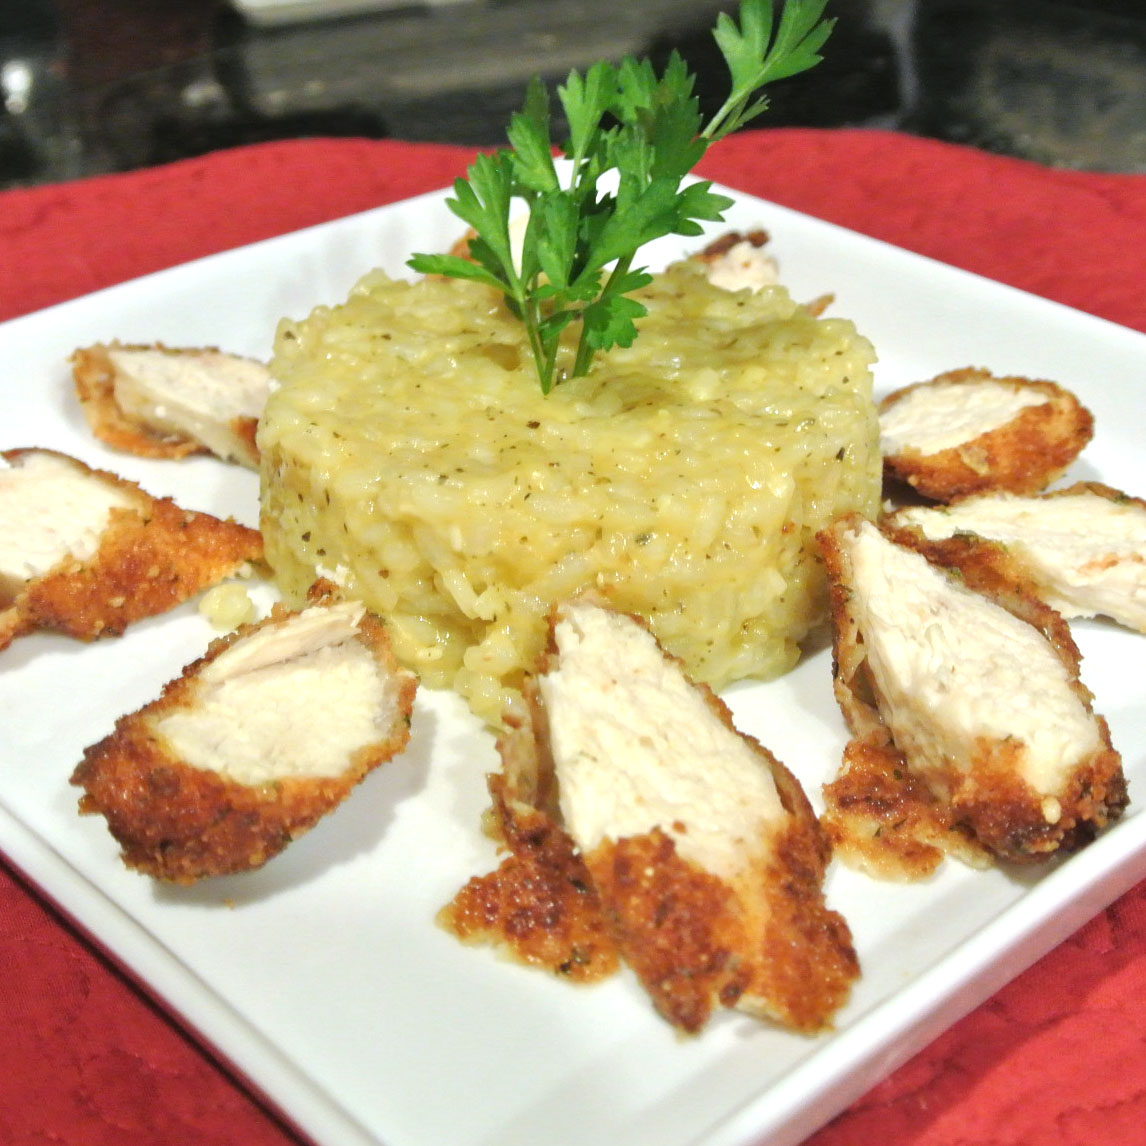 ... What's For Dinner?: Parmesan Crusted Chicken with Garlic Herb Risotto